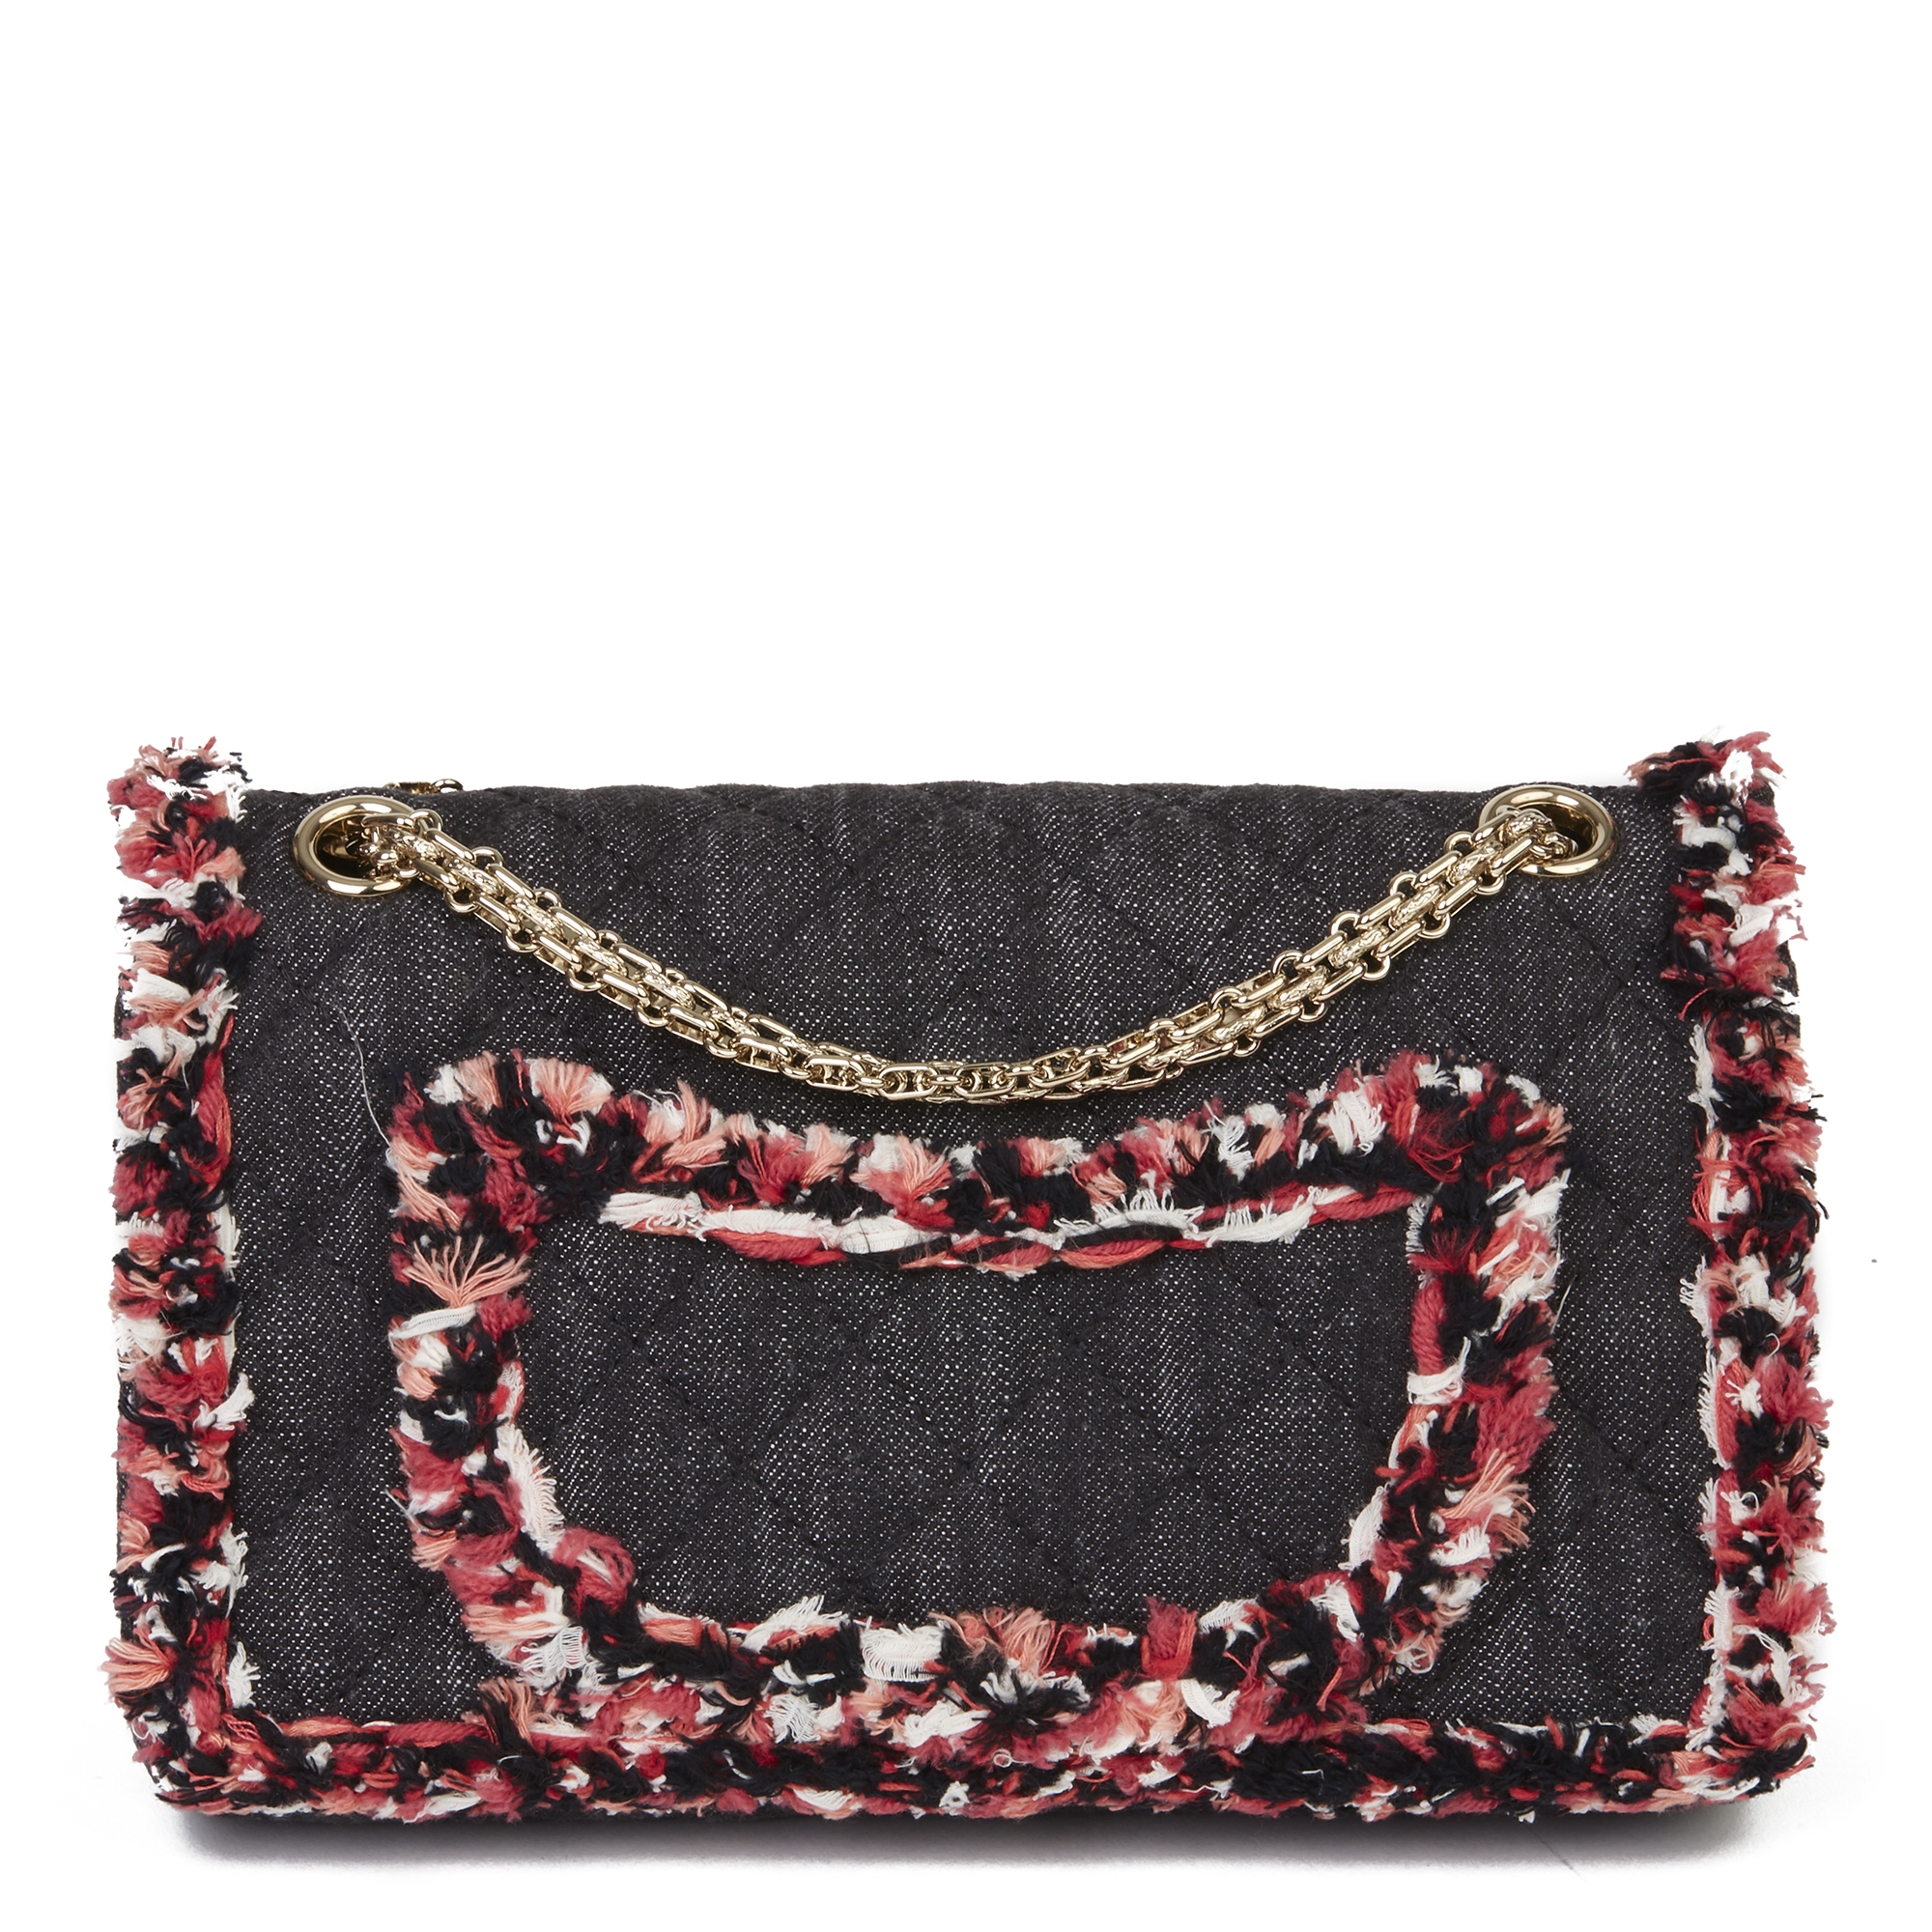 Chanel Black Quilted Denim & Pink Tweed 2.55 Reissue 225 Double Flap Bag - Image 10 of 12